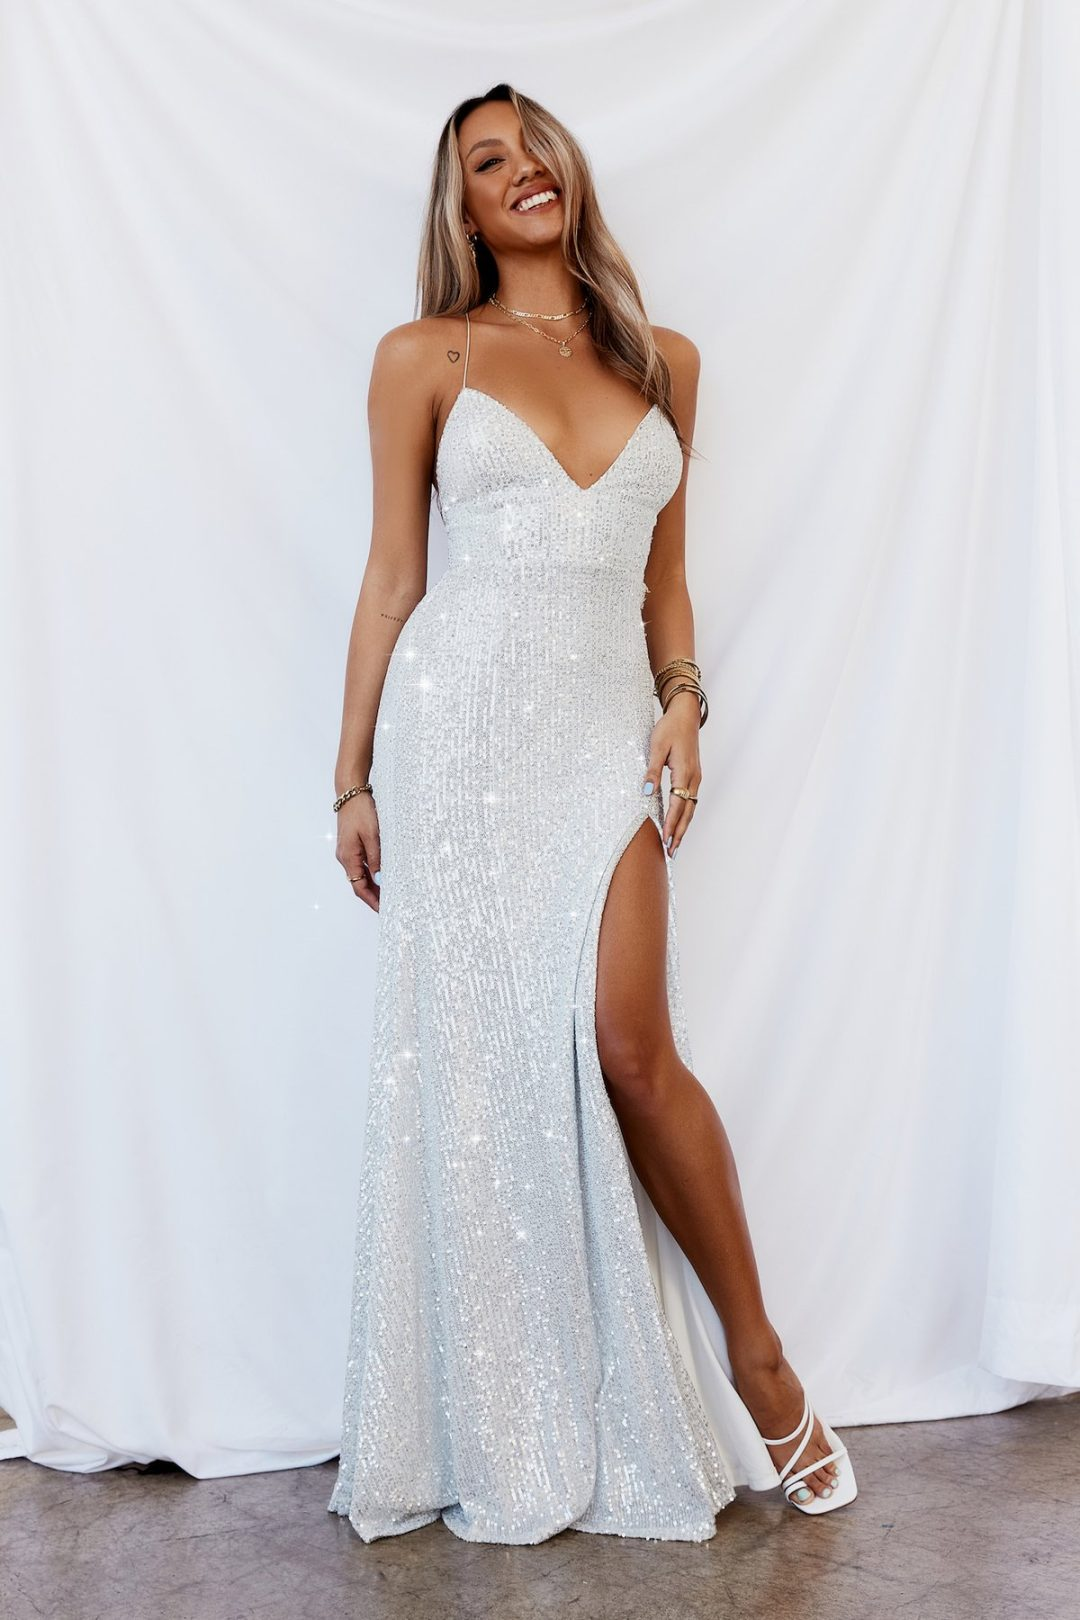 What To Wear At A Masquerade Party: Simple white sequined maxi dress